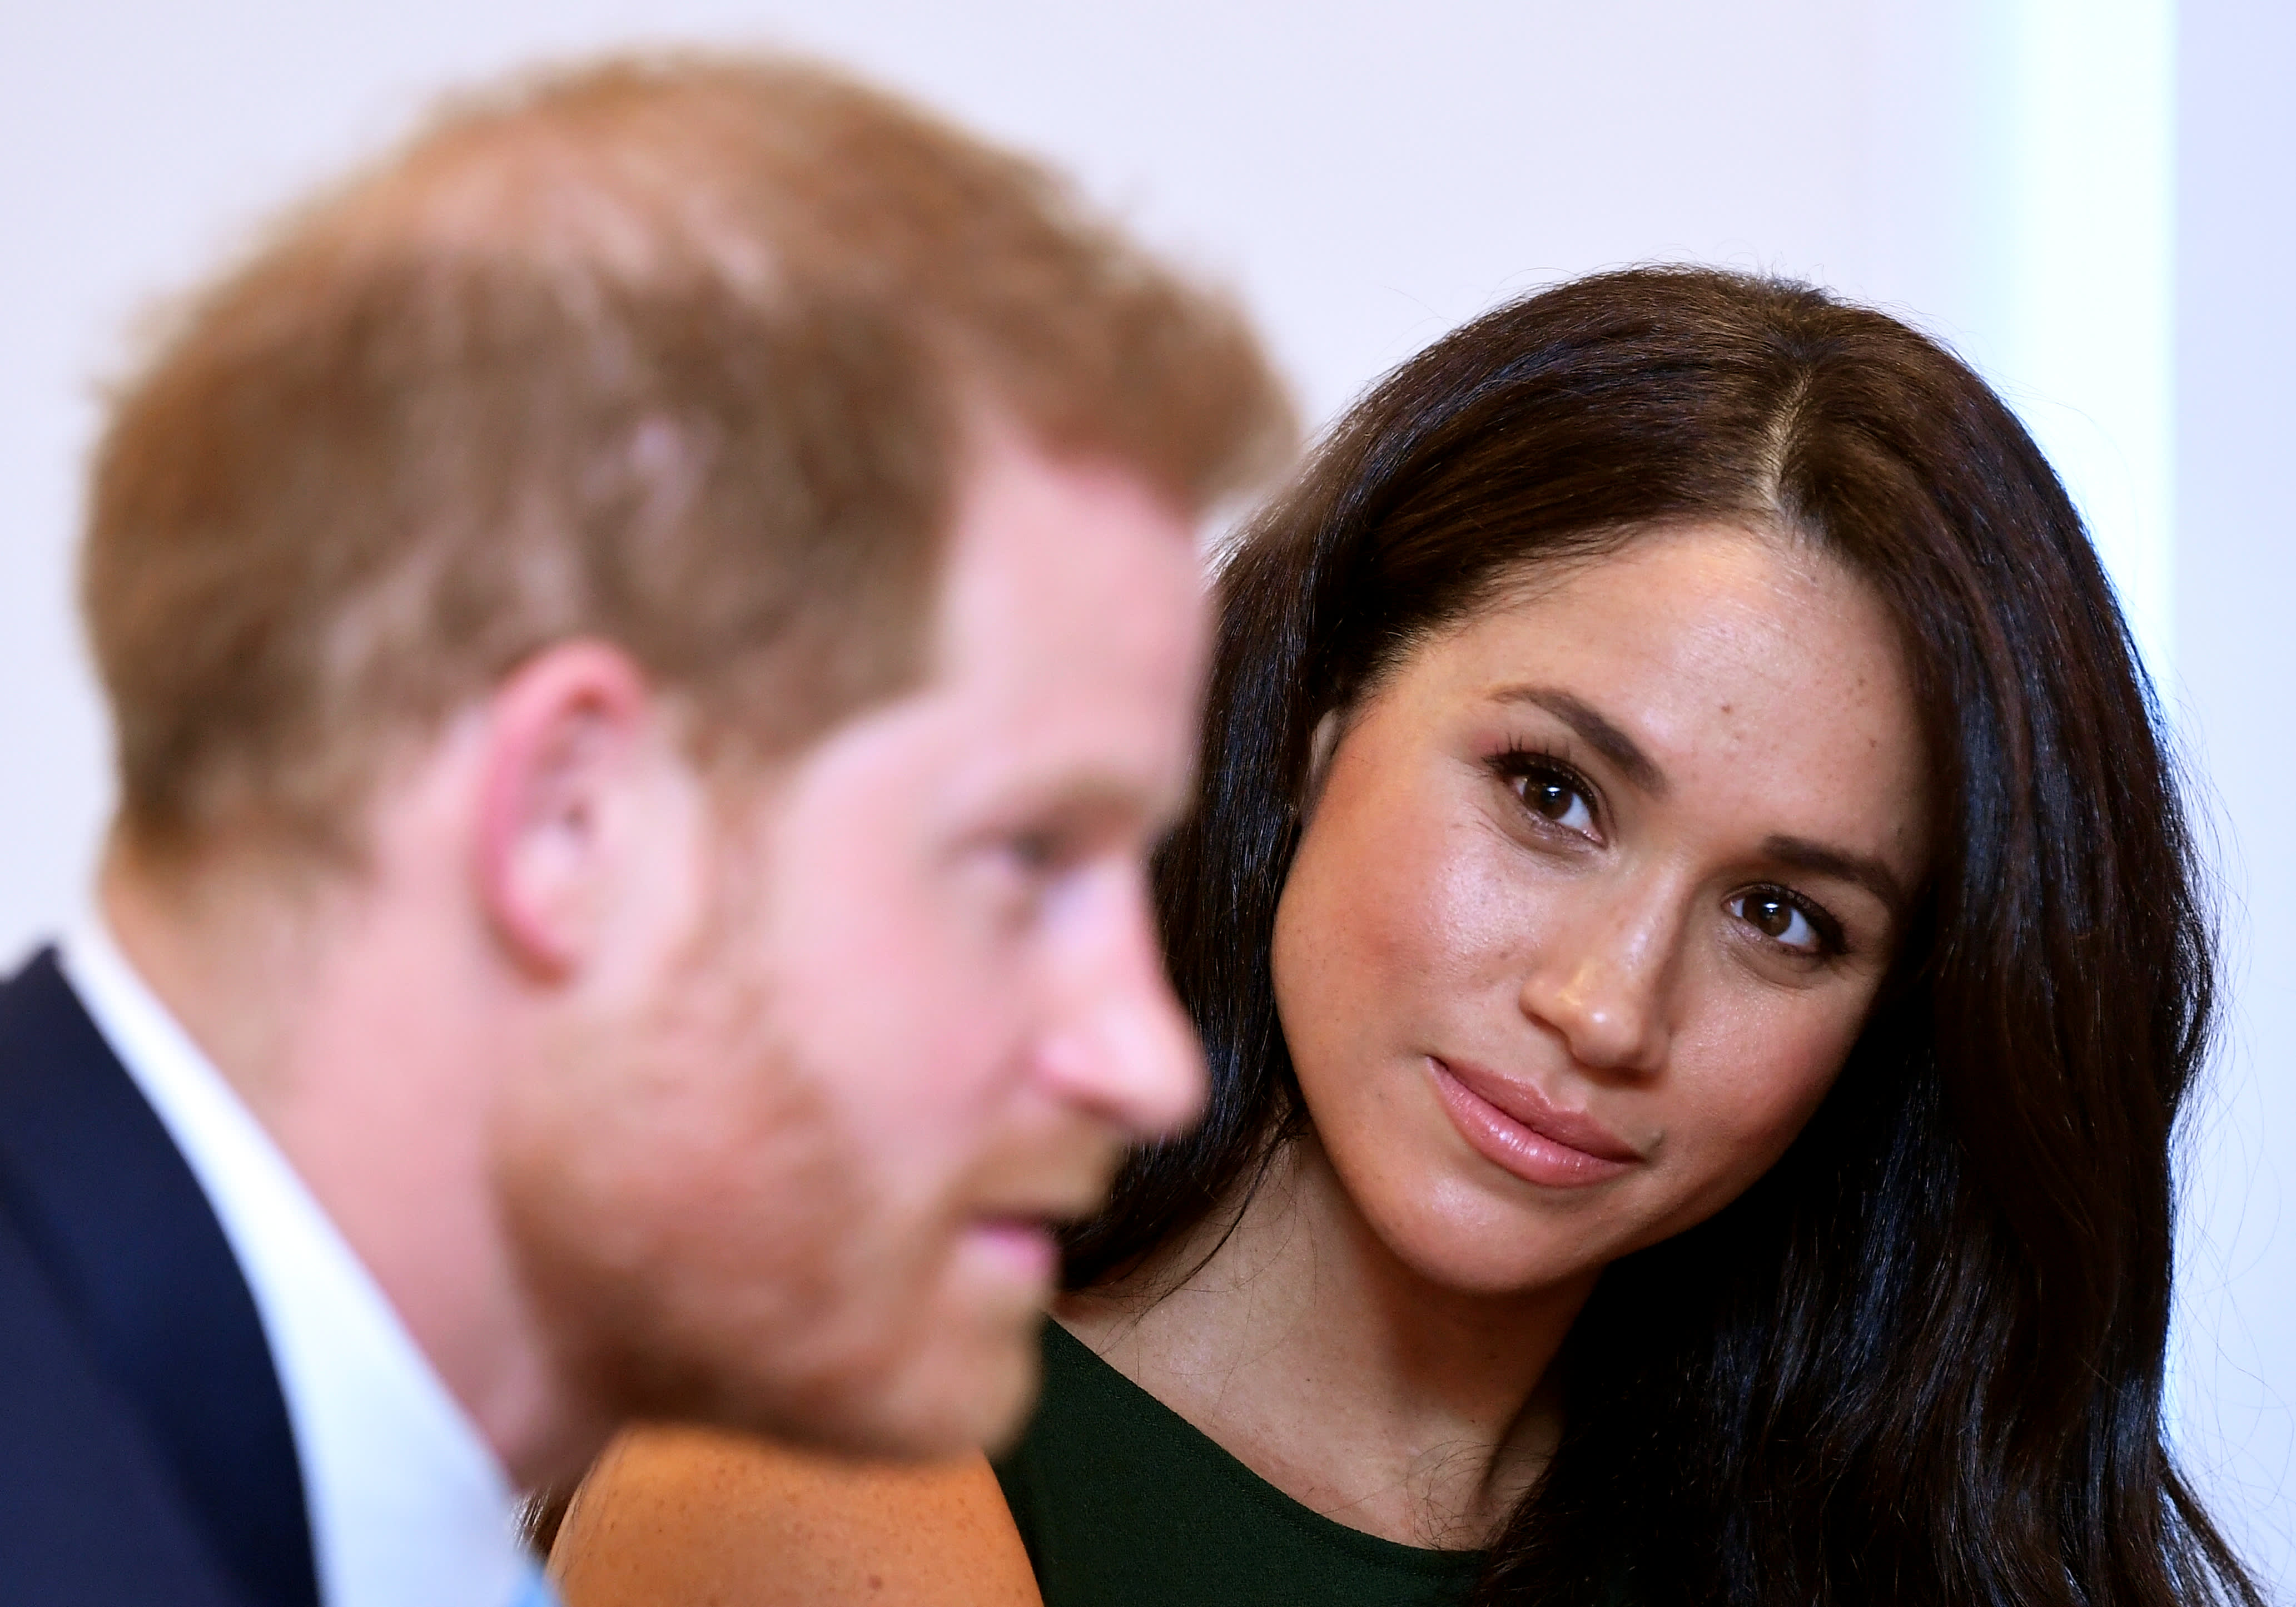 Meghan Markle says her friends told her not to marry Prince Harry because of British press intrusion